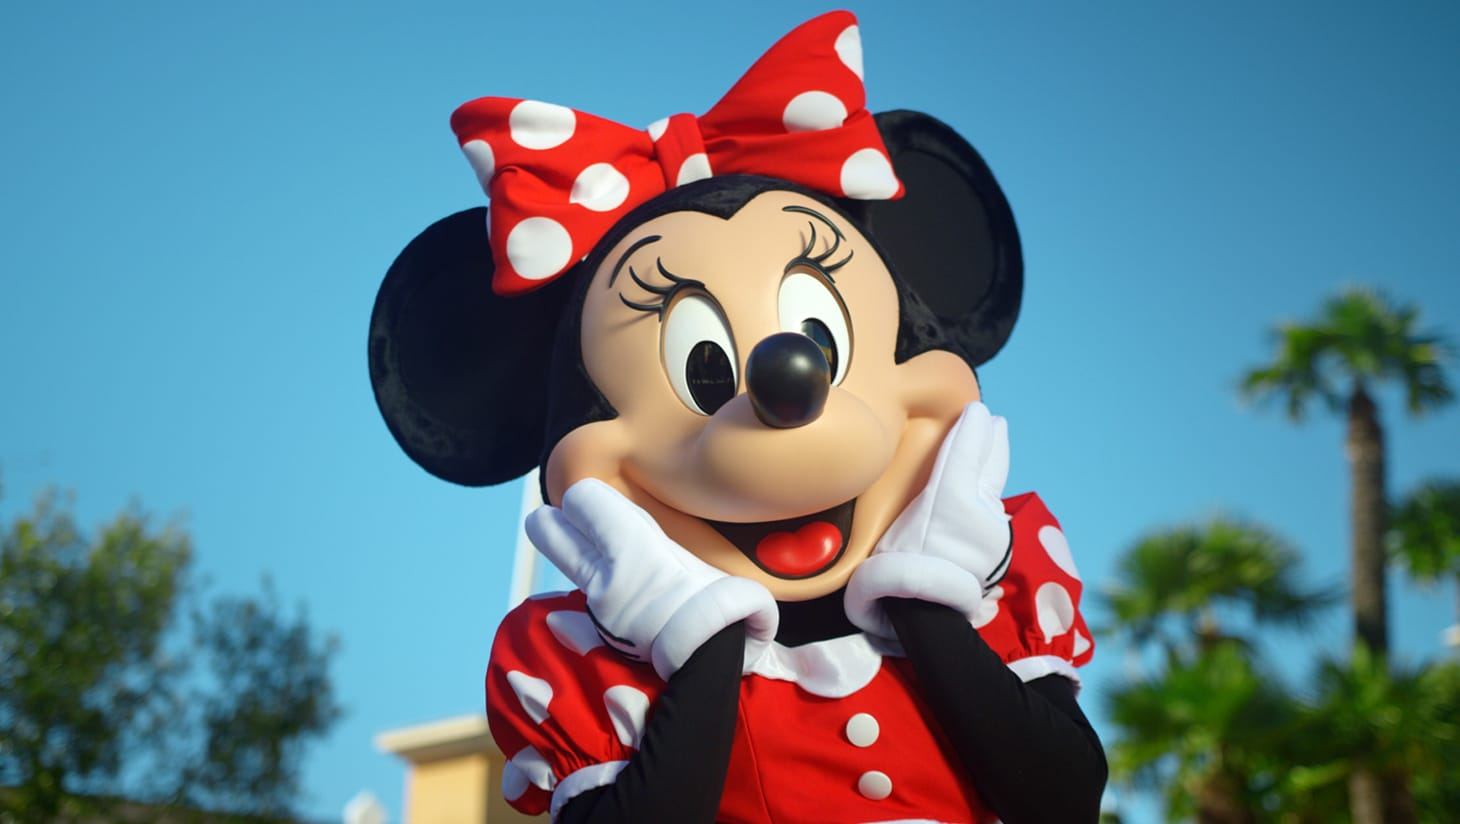 Minnie Mouse smiling